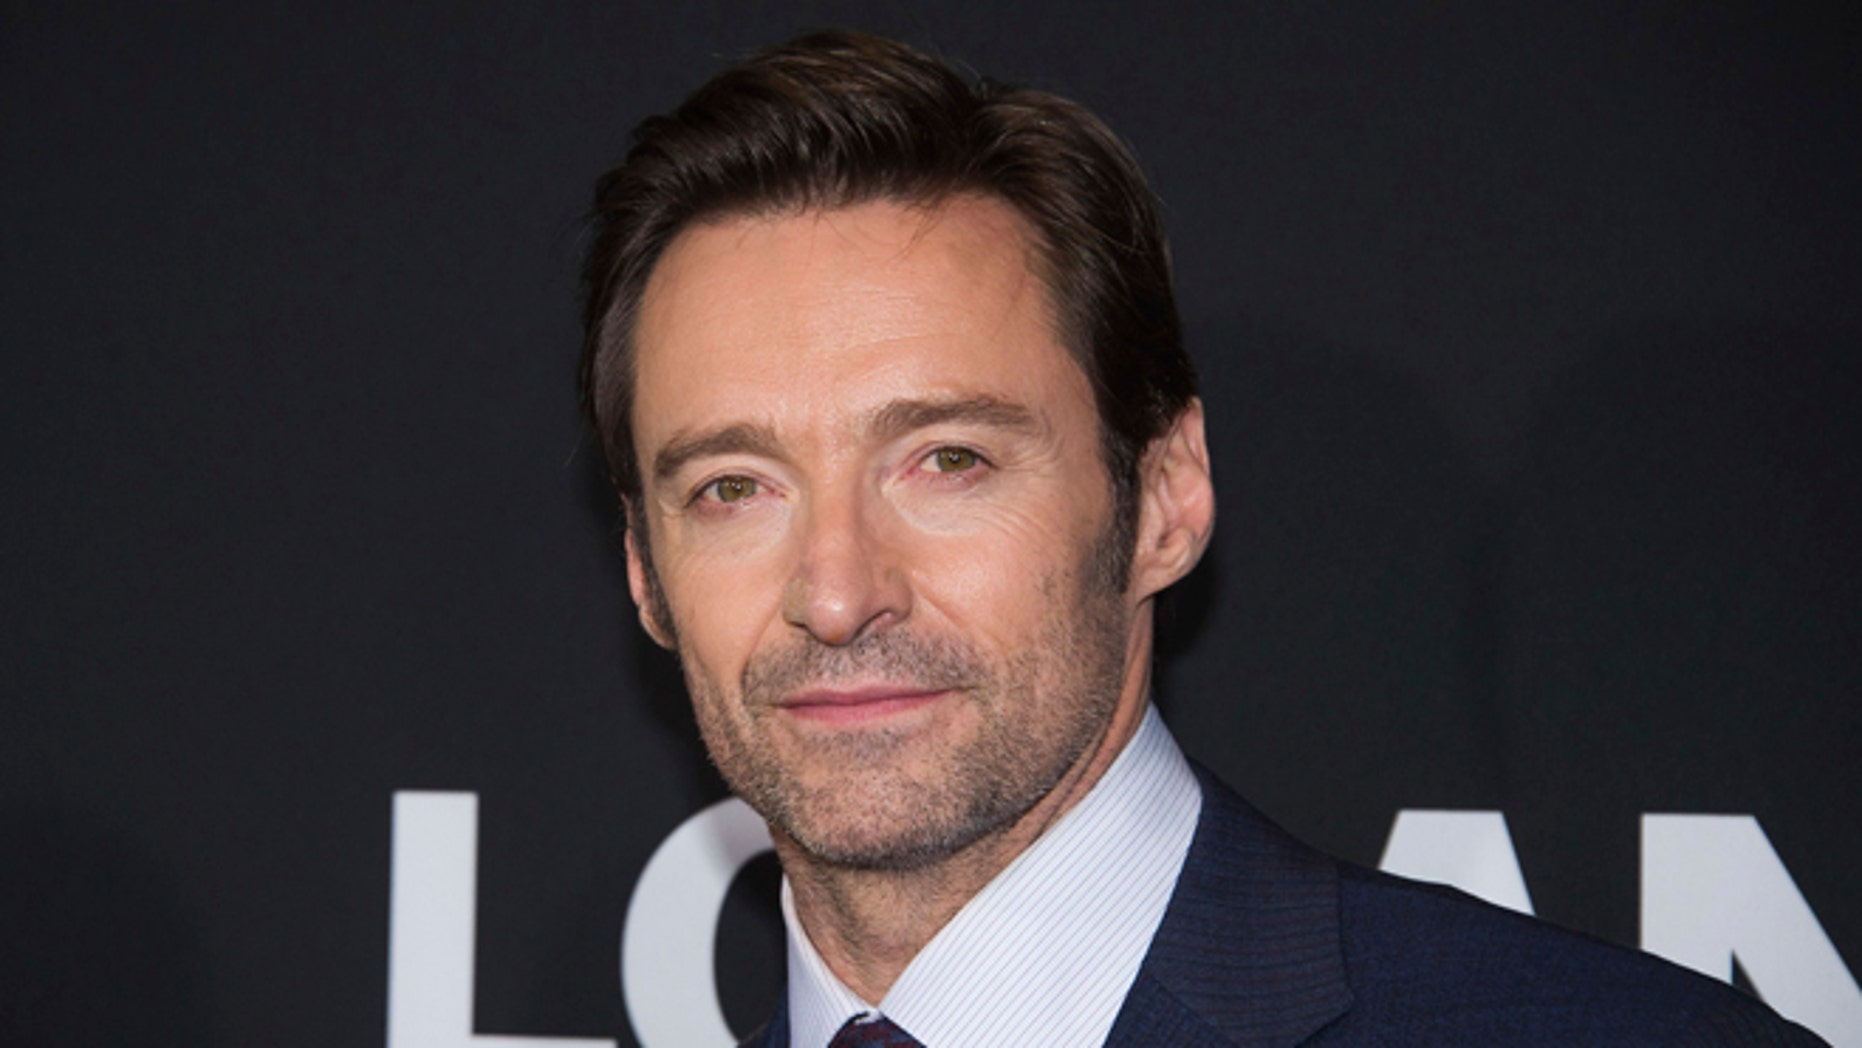 """FILE - In this Feb. 24, 2017 file photo, Hugh Jackman attends a screening of """"Logan"""" in New York."""